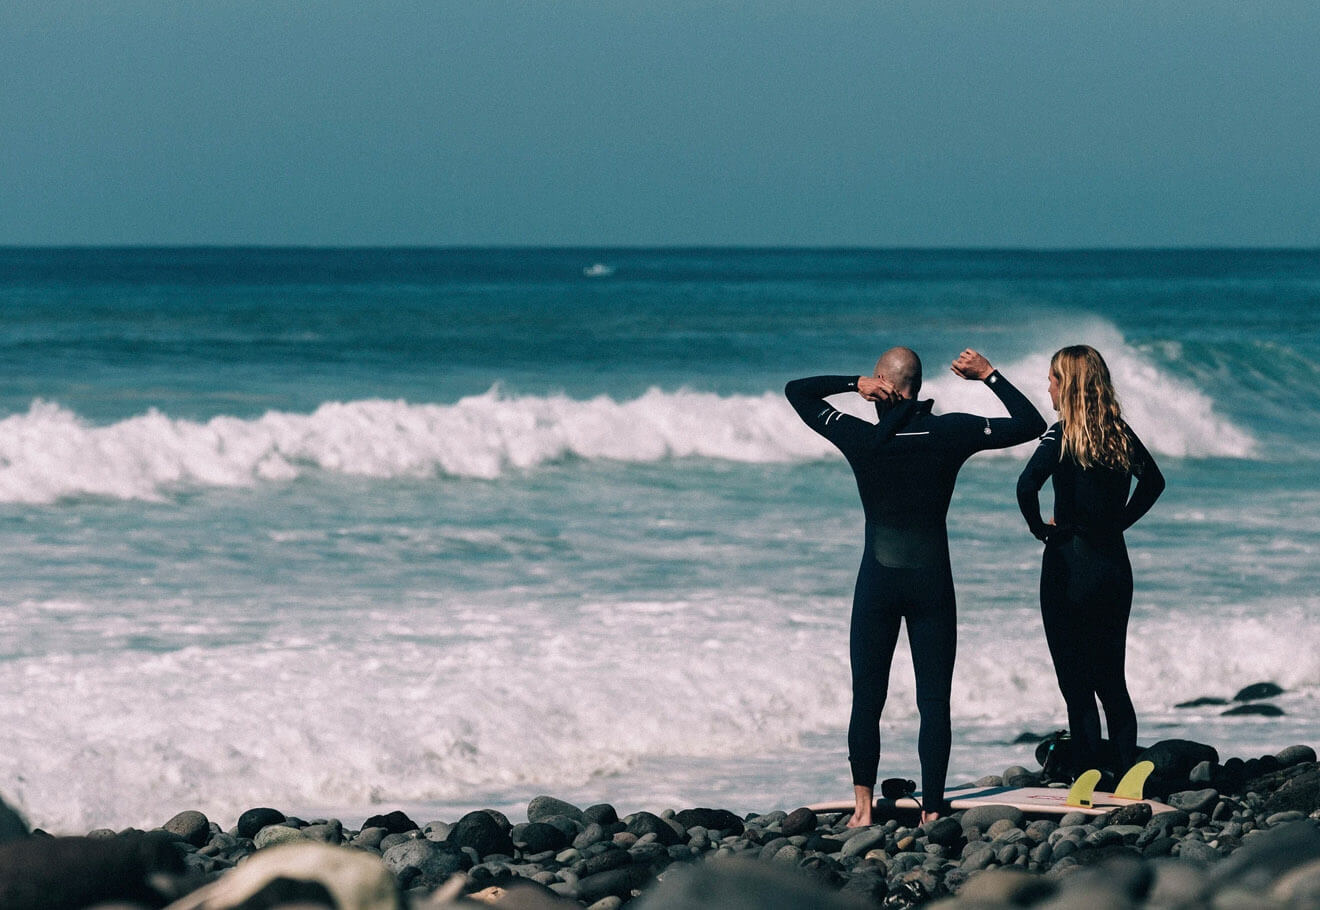 Two surfers in wetsuits